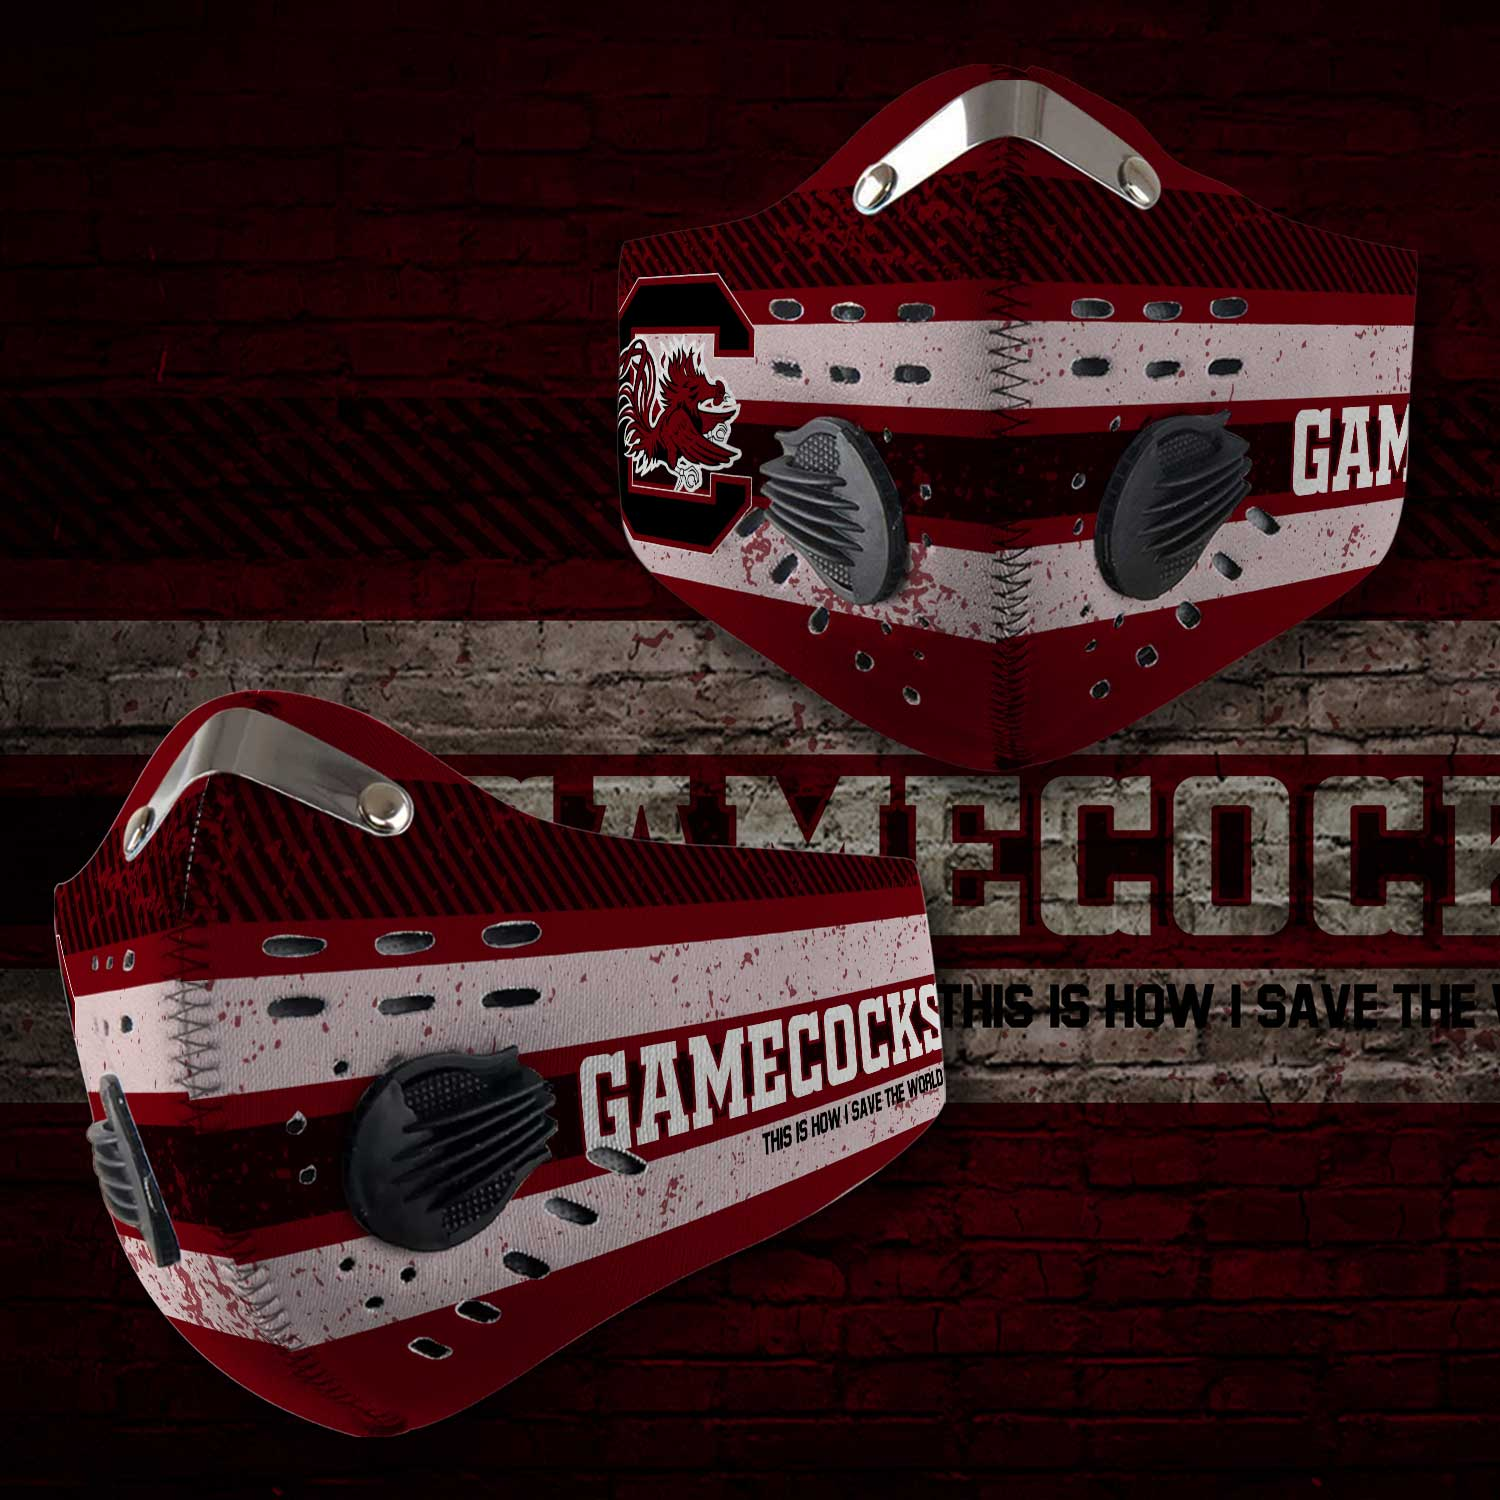 South carolina gamecocks this is how i save the world face mask 1